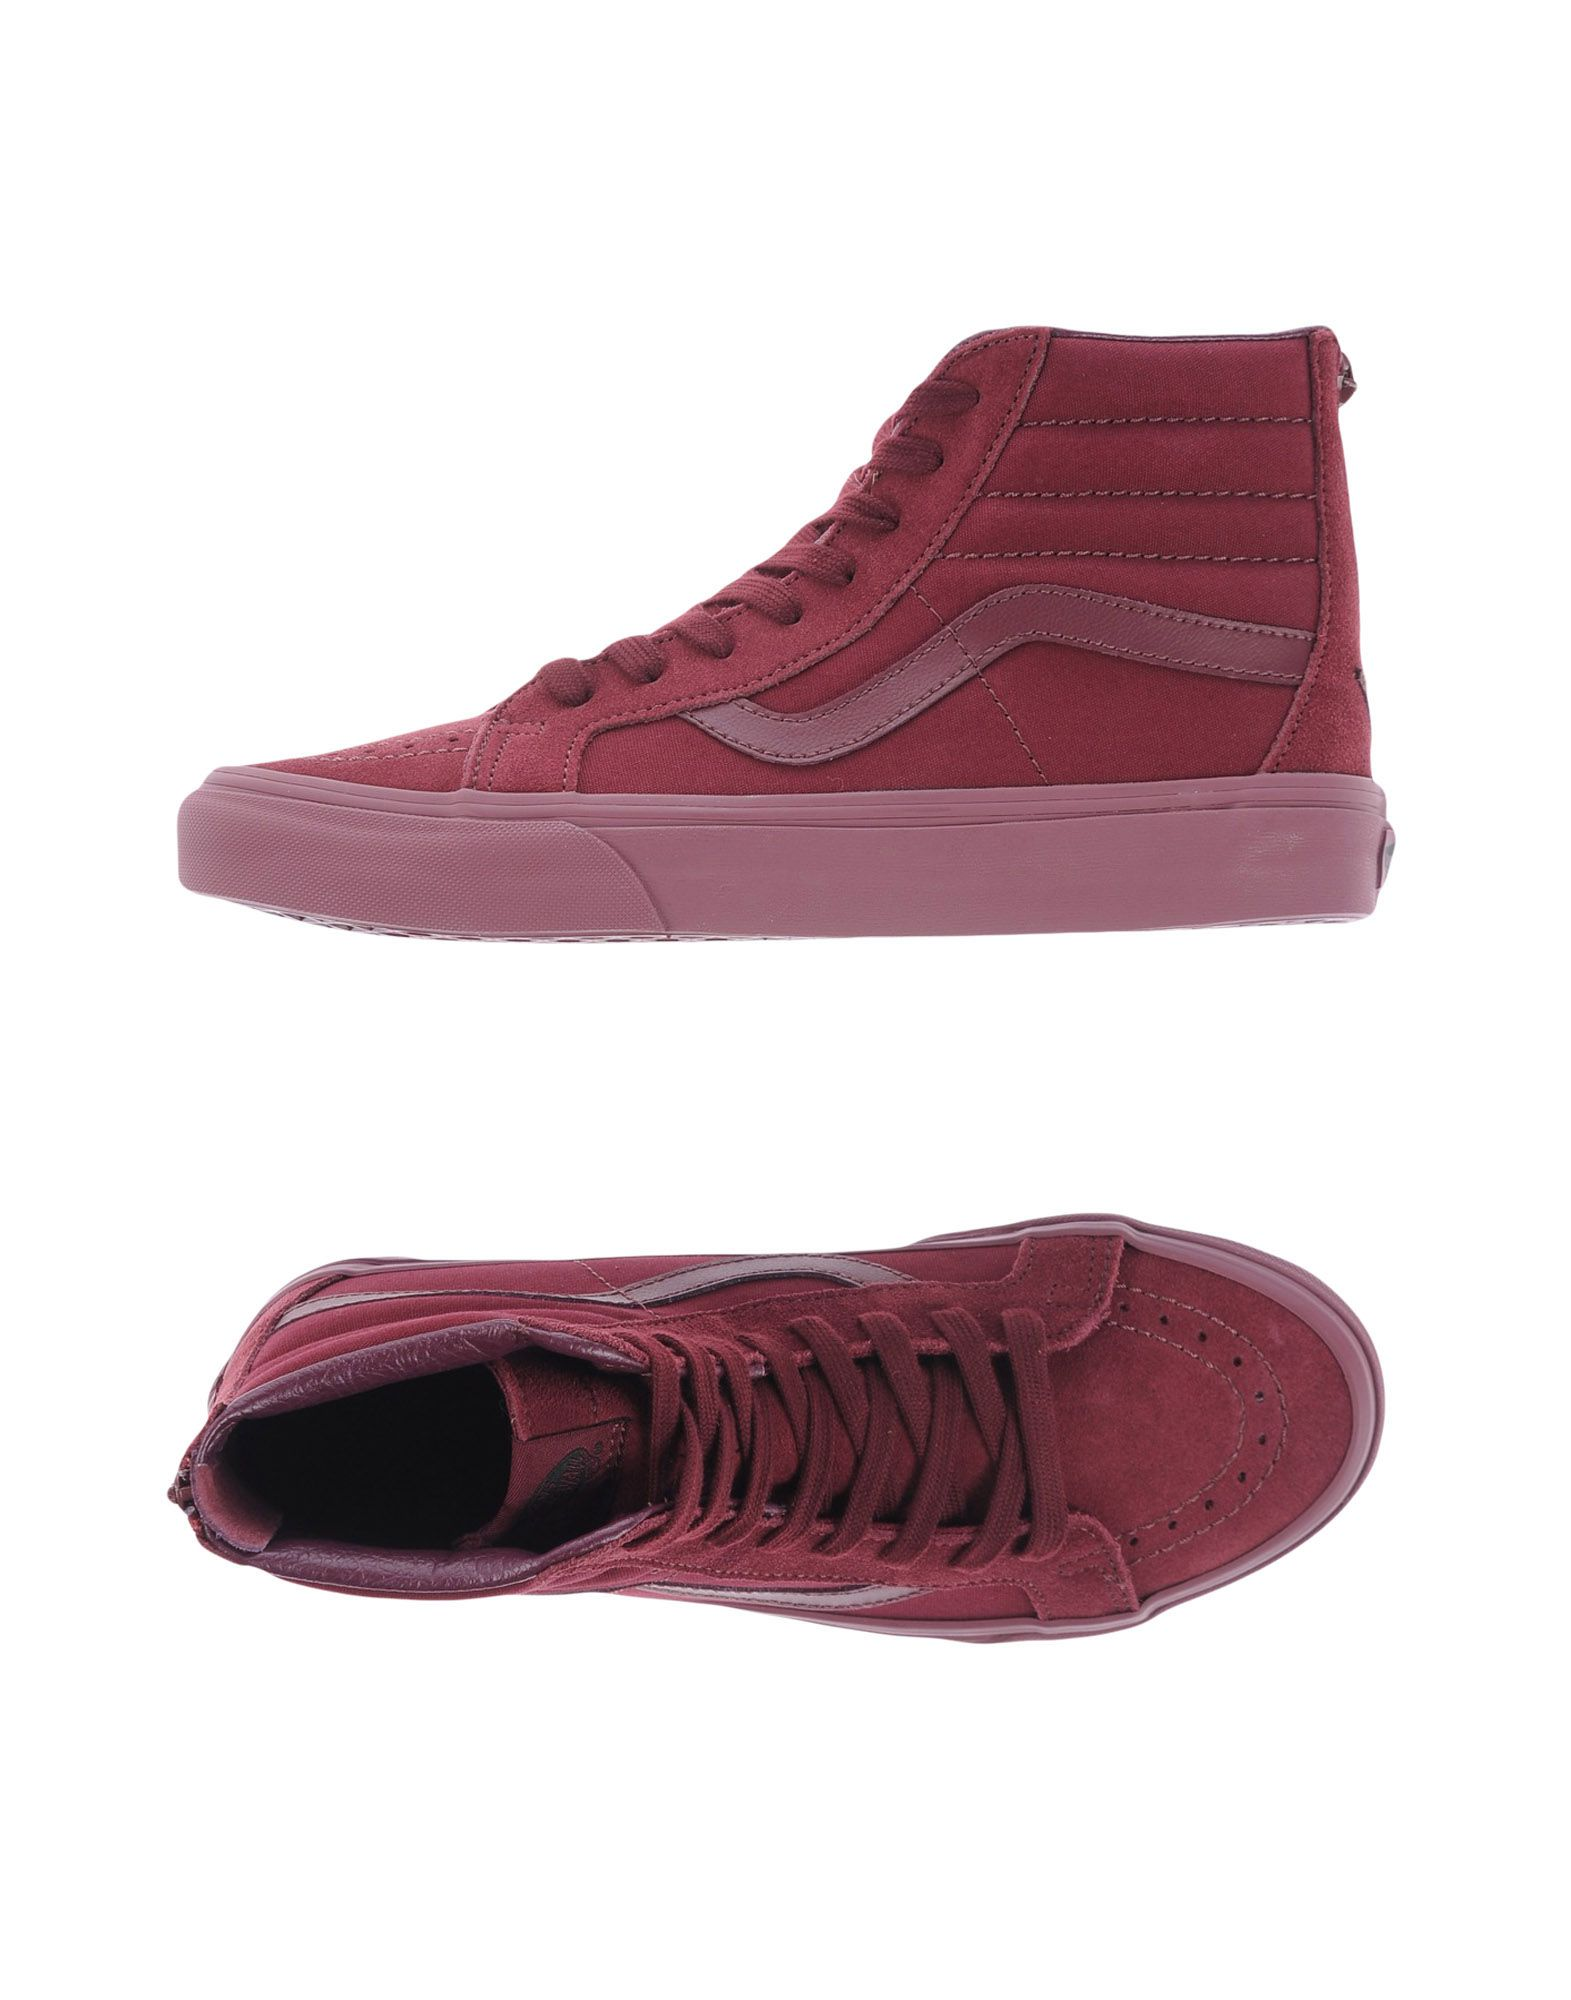 d98b2c10b Vans U Sk8-Hi Reissue Zip Mono Port Roy - Sneakers - Women Vans ...